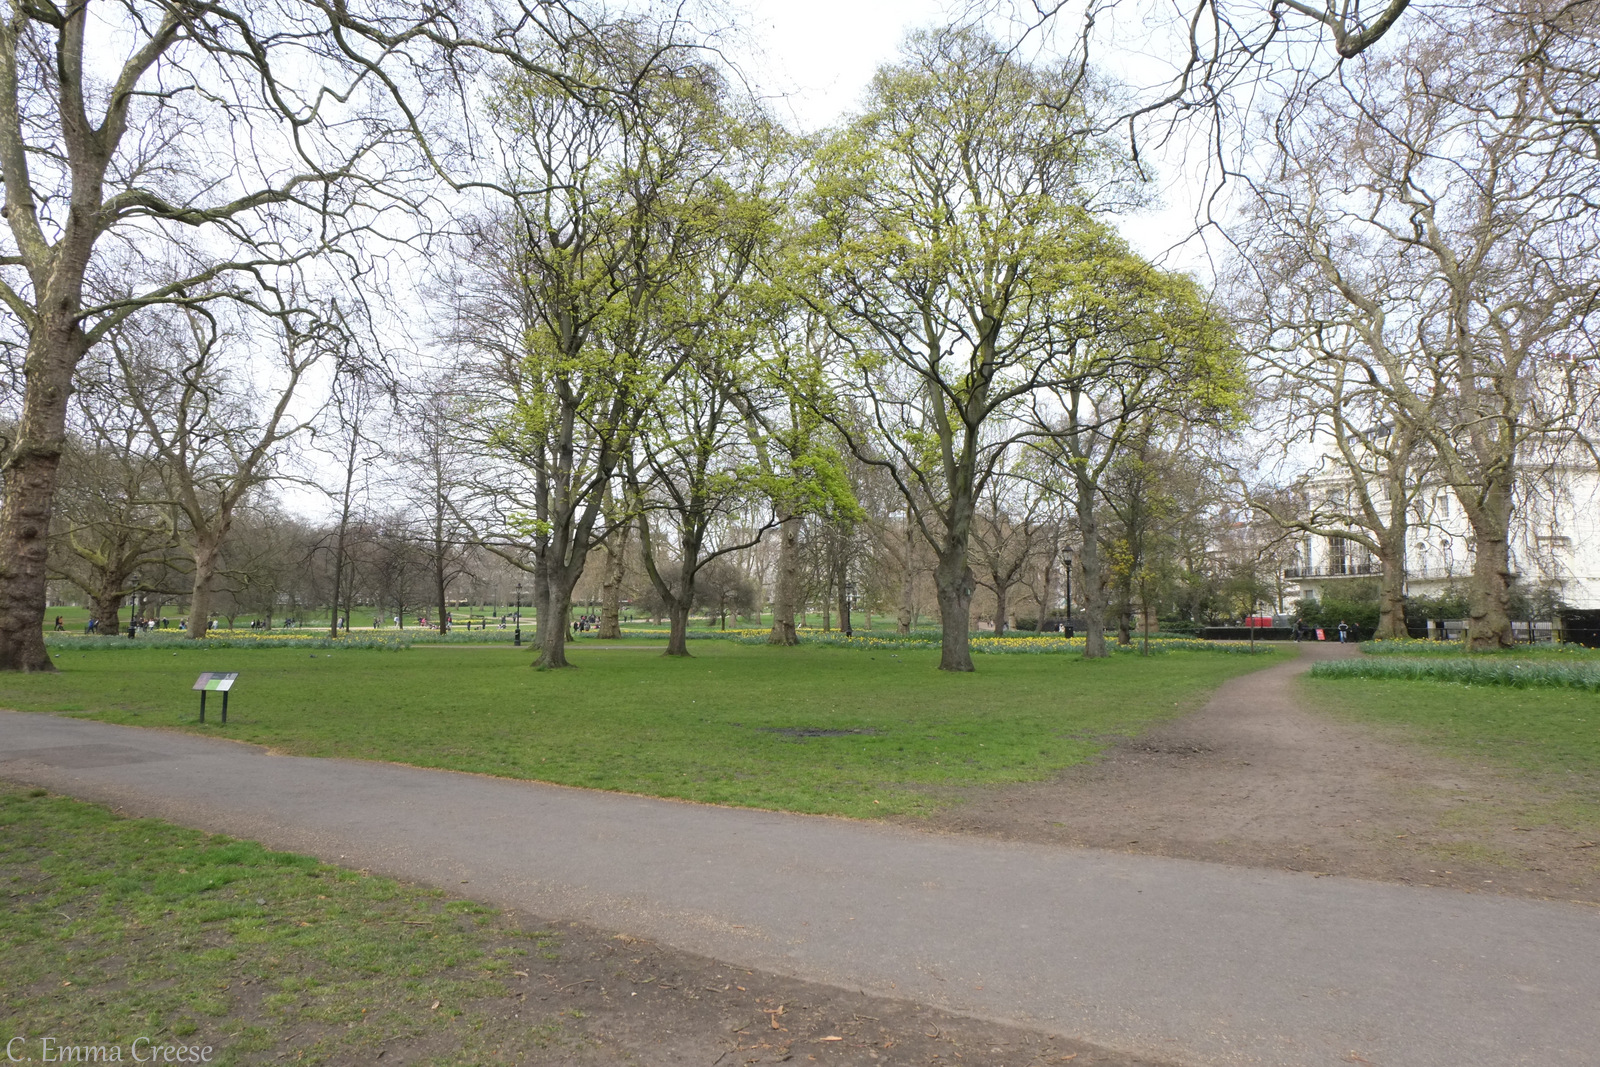 St James's Park and Green Park Adventures of a London Kiwi